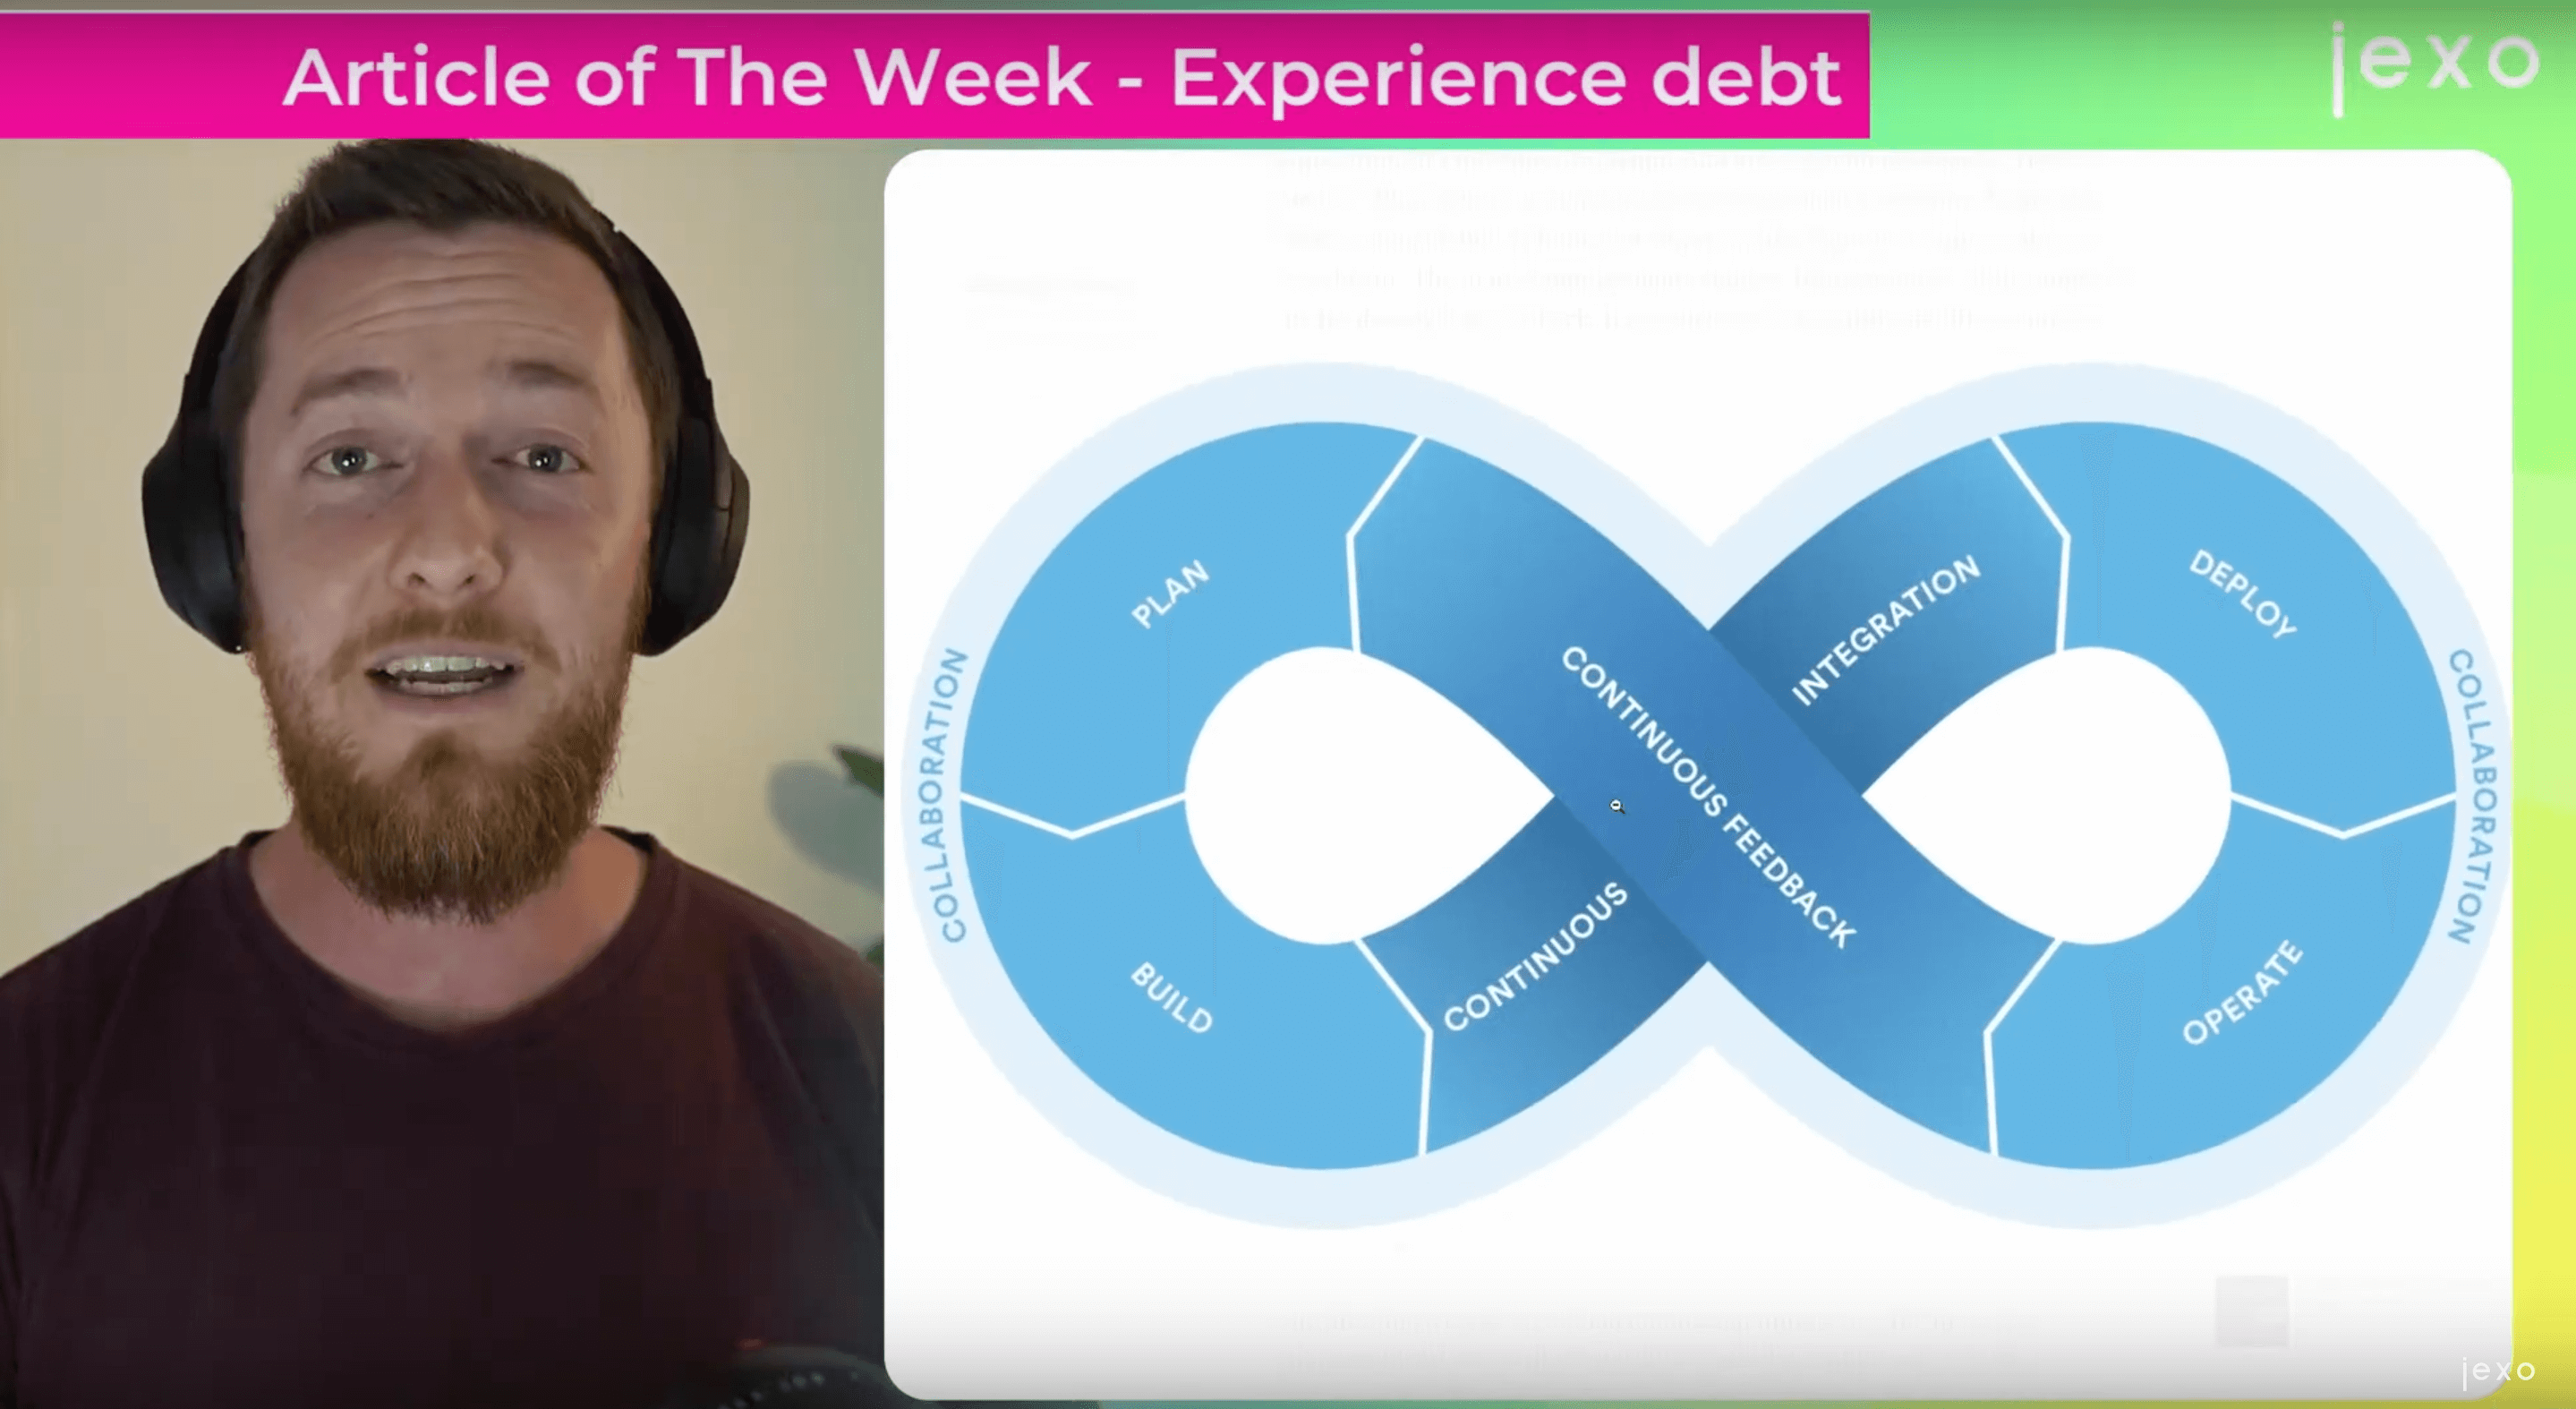 Atlassian news: Great article about experience debt